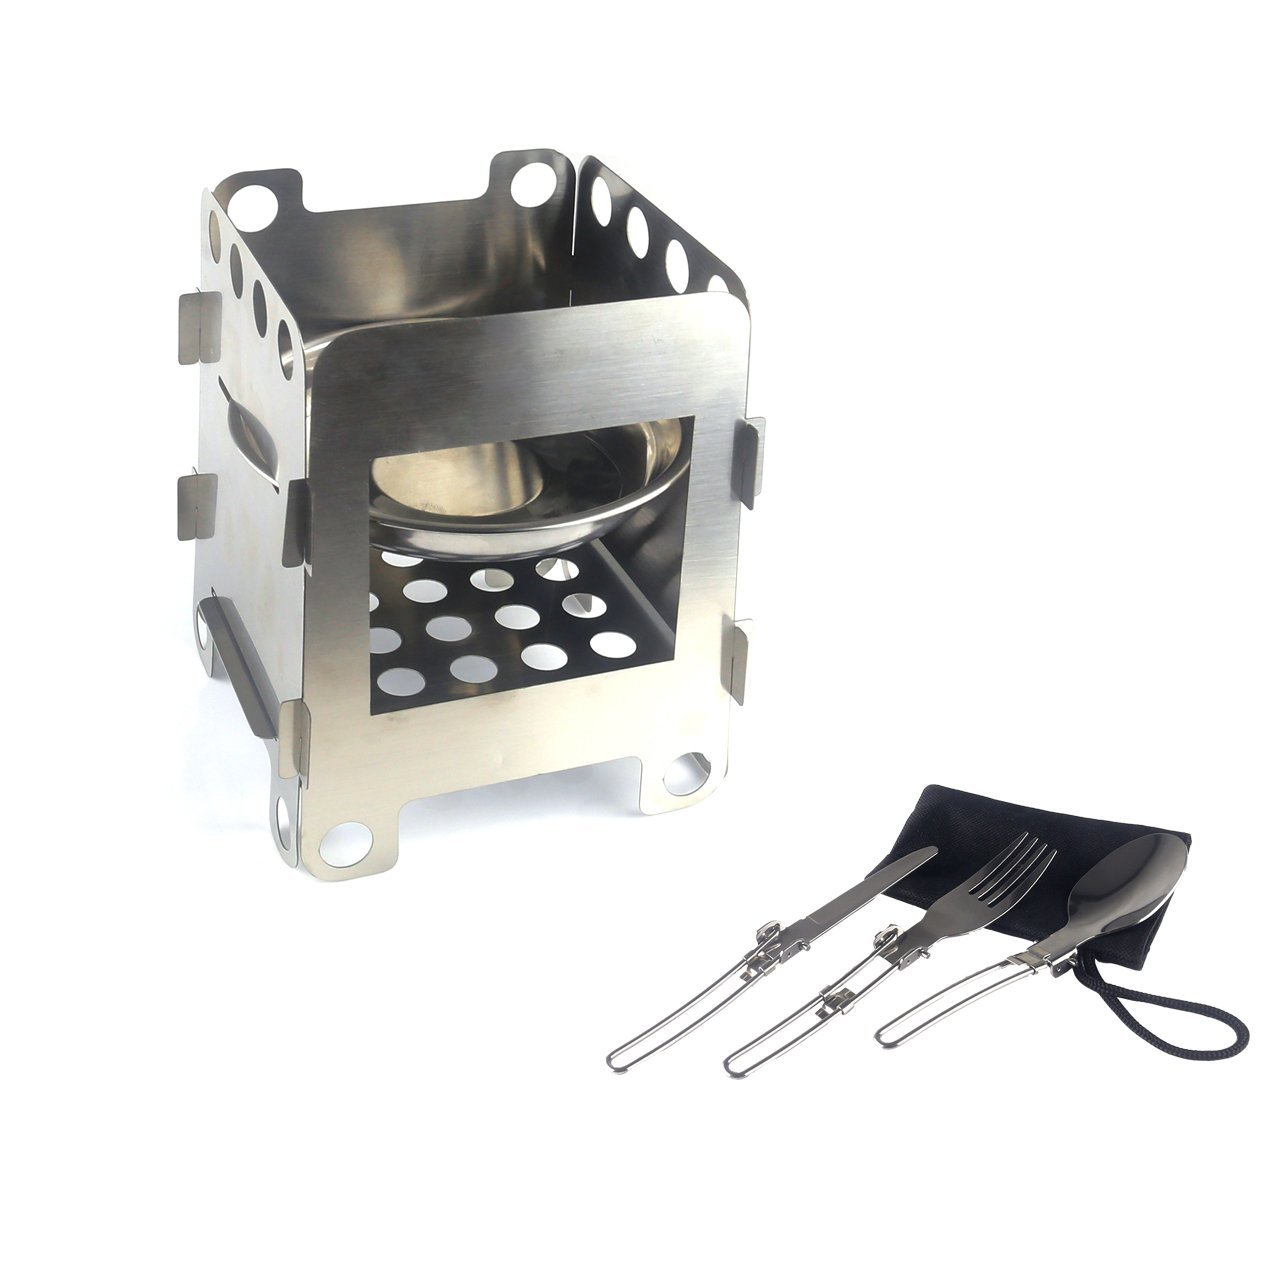 Outdoor Camping Wood Burning Stove, Alcohol Stoves, Lightweight Portable Stainless Steel Foldable Pocket Stove, Backpacking Picnic Cooking Stove-Camping Tableware Set Included